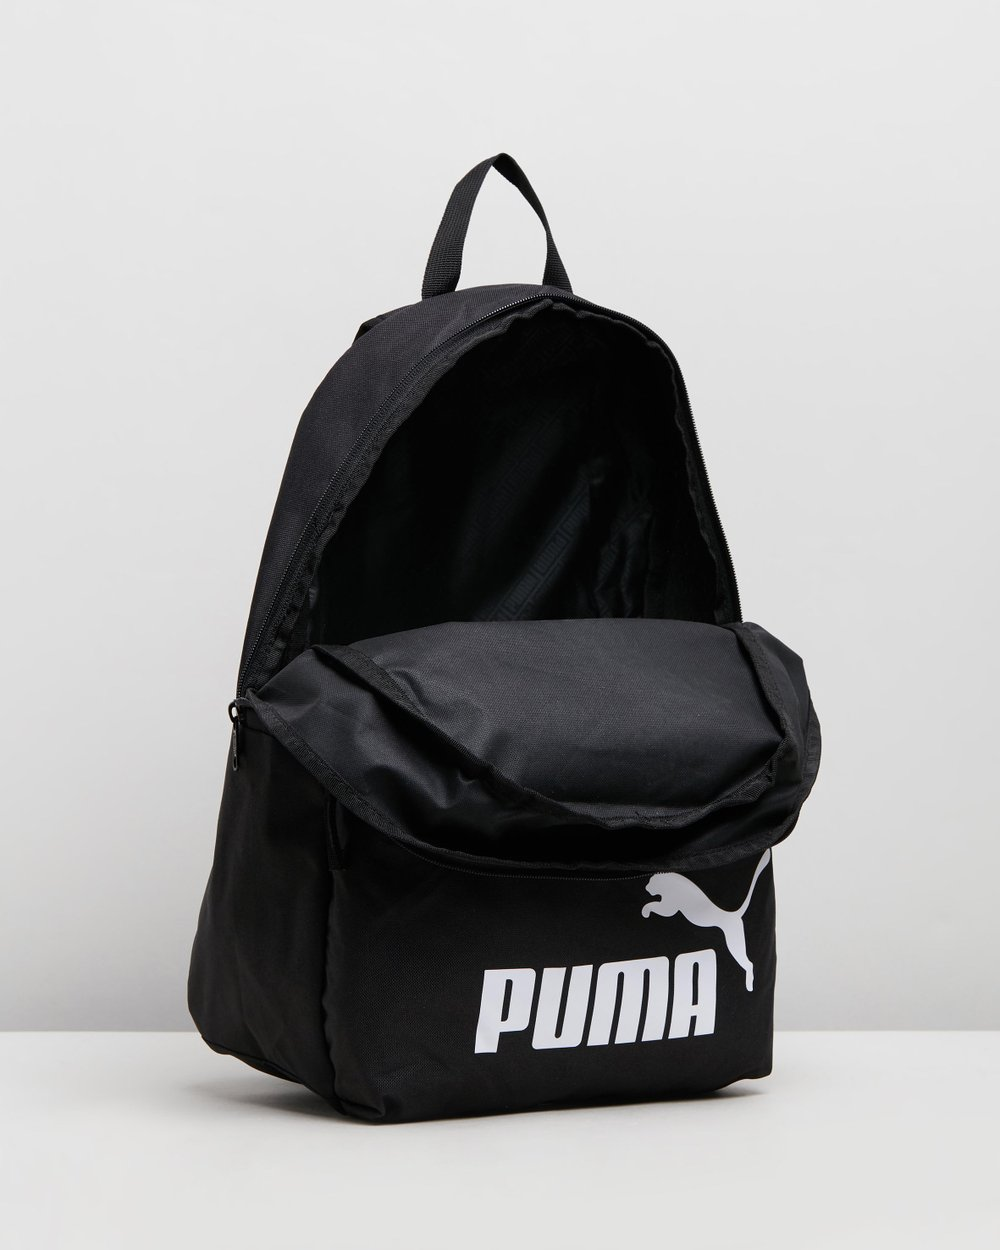 2f673bc062a4 Phase Backpack by Puma Online